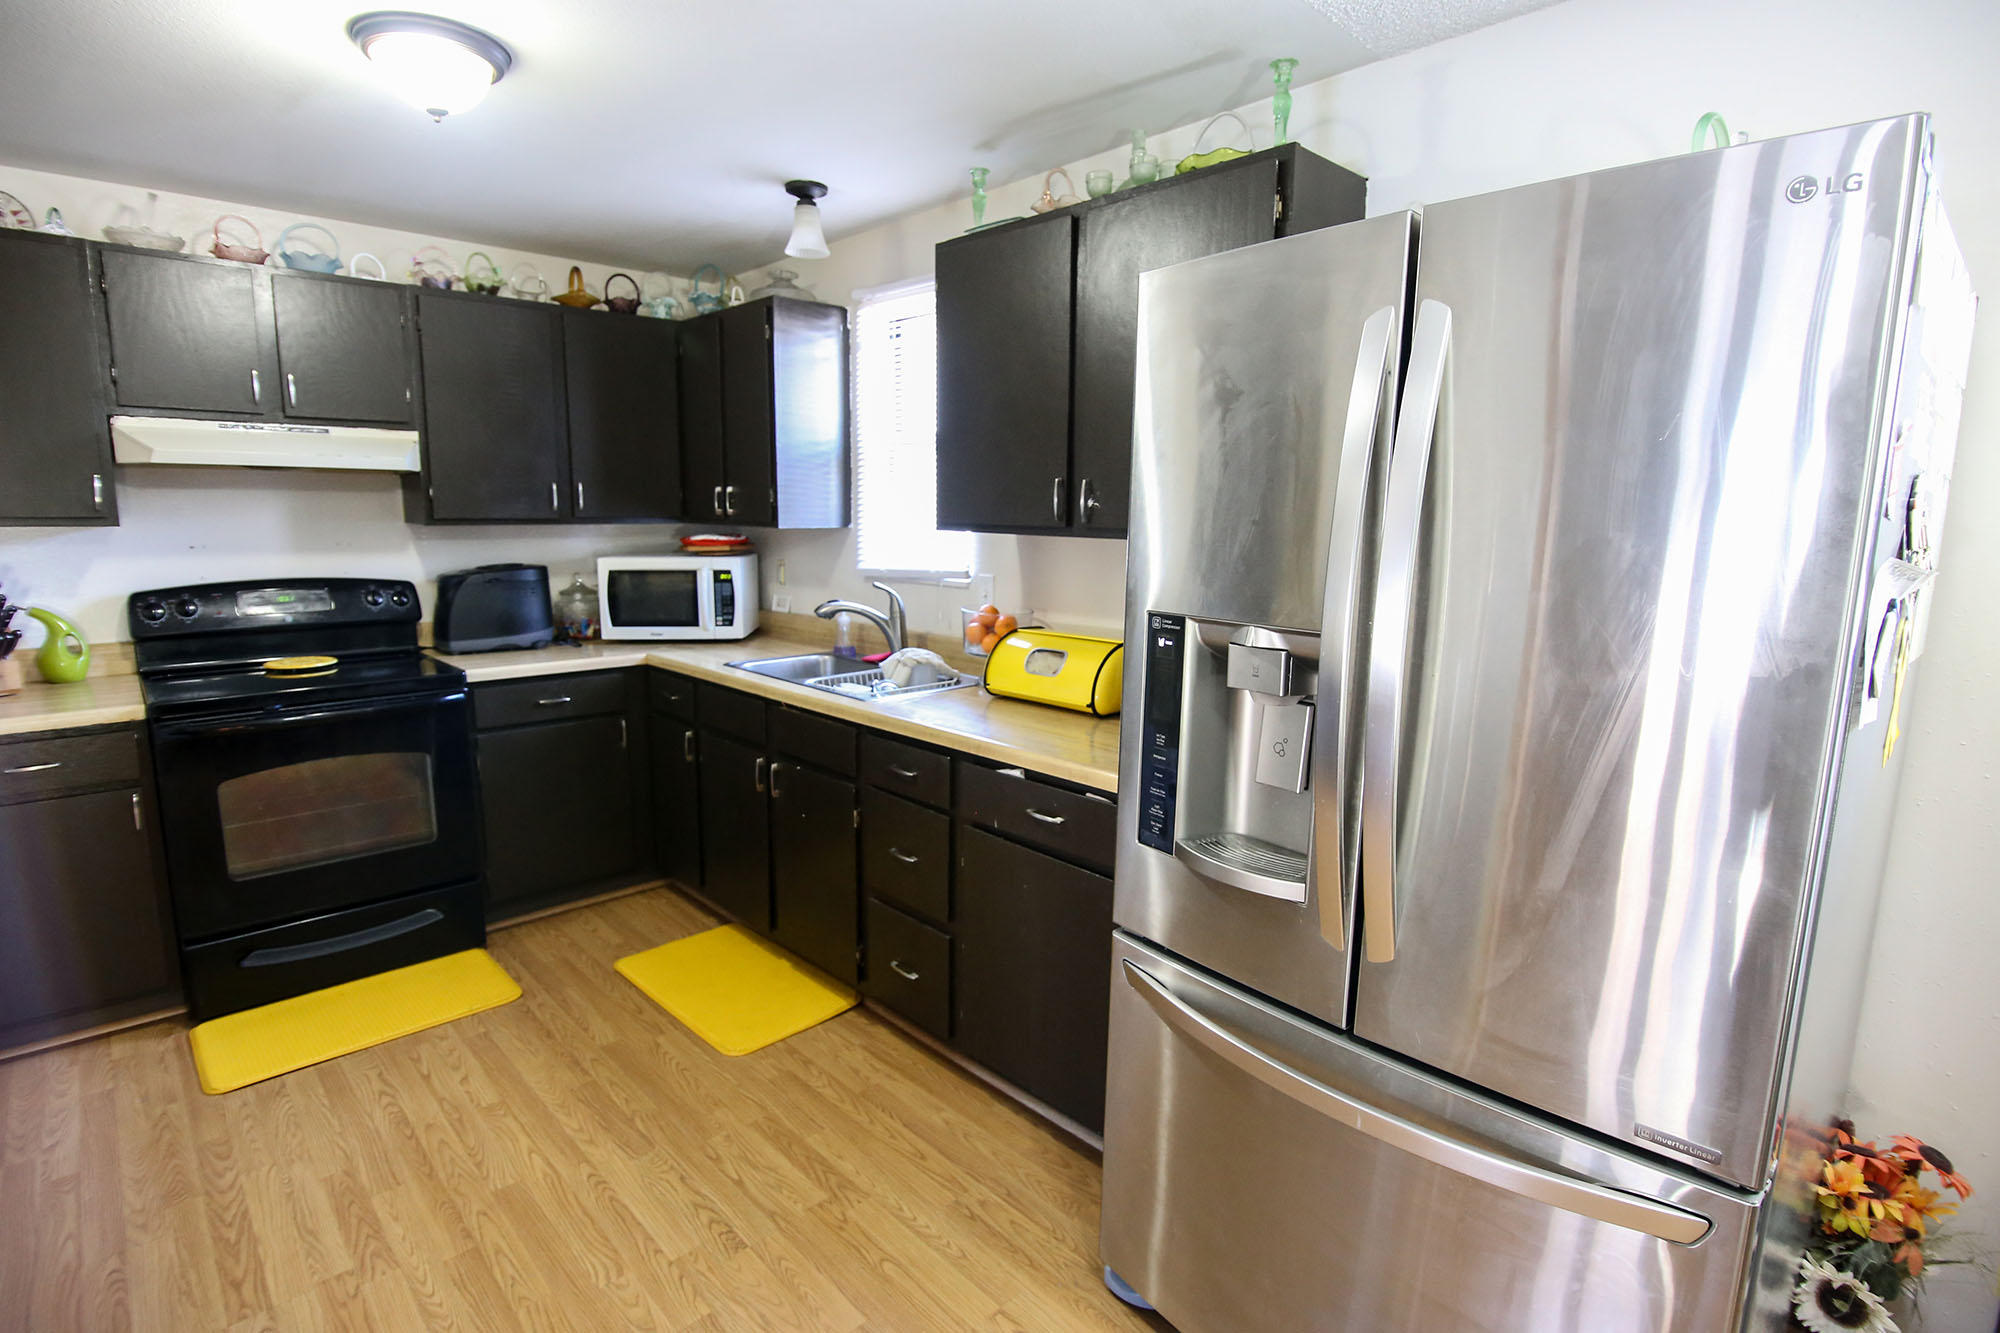 1212 11th Street, Sheridan, Wyoming 82801, 2 Bedrooms Bedrooms, ,1 BathroomBathrooms,Residential,For Sale,11th,19-41